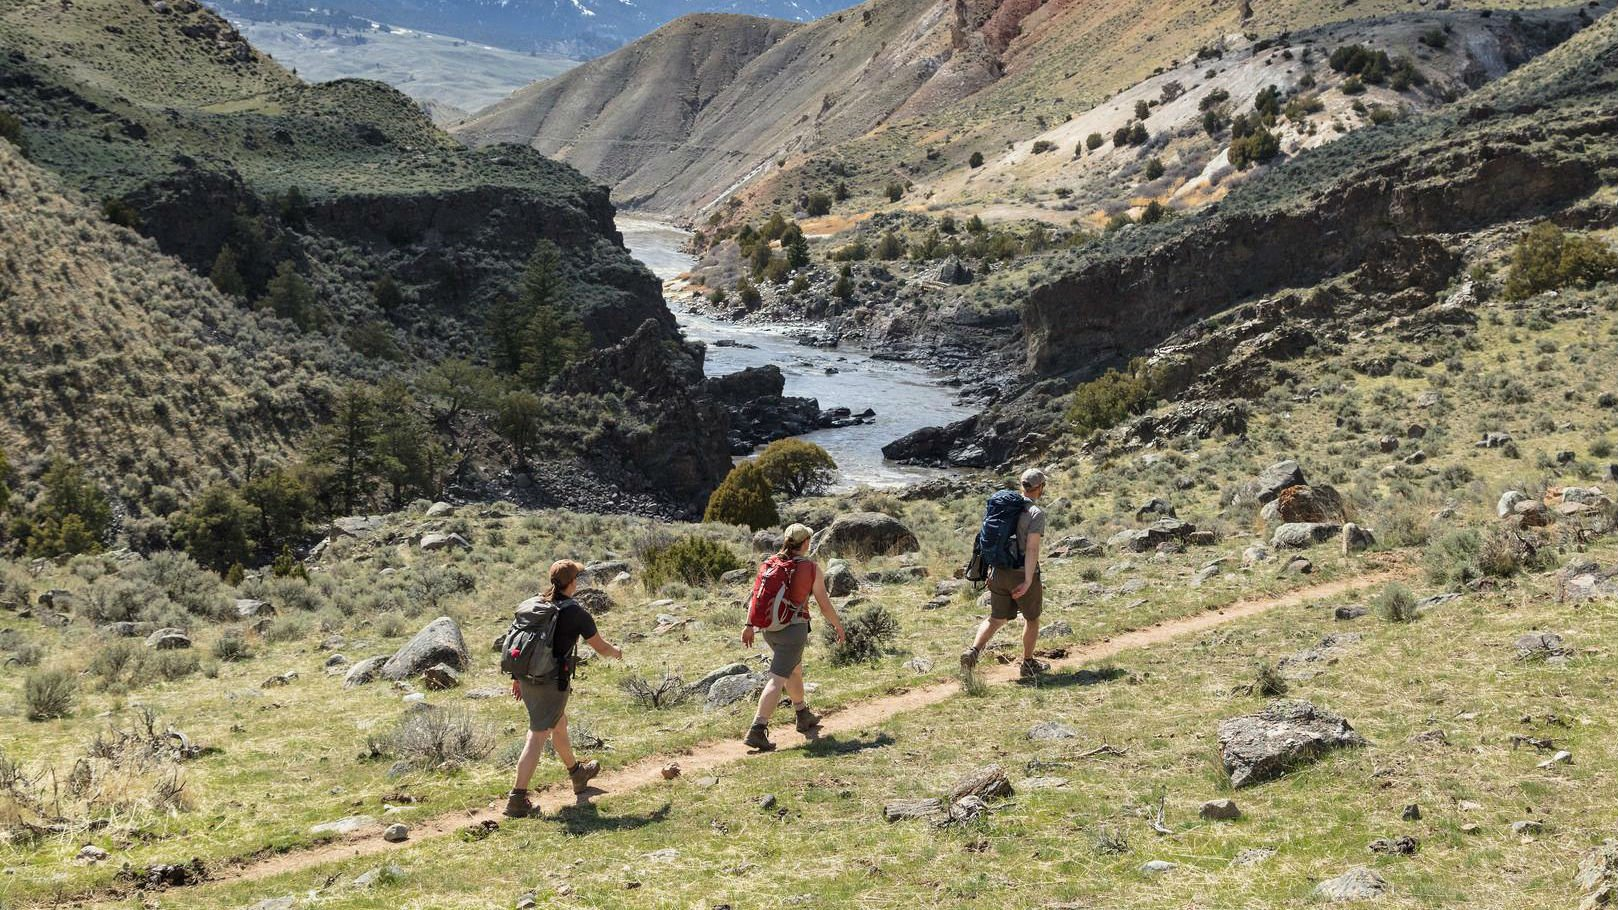 Dayhikers on Yellowstone River Trail through Black Canyon of the Yellowstone. Courtesy Yellowstone National Park Facebook page